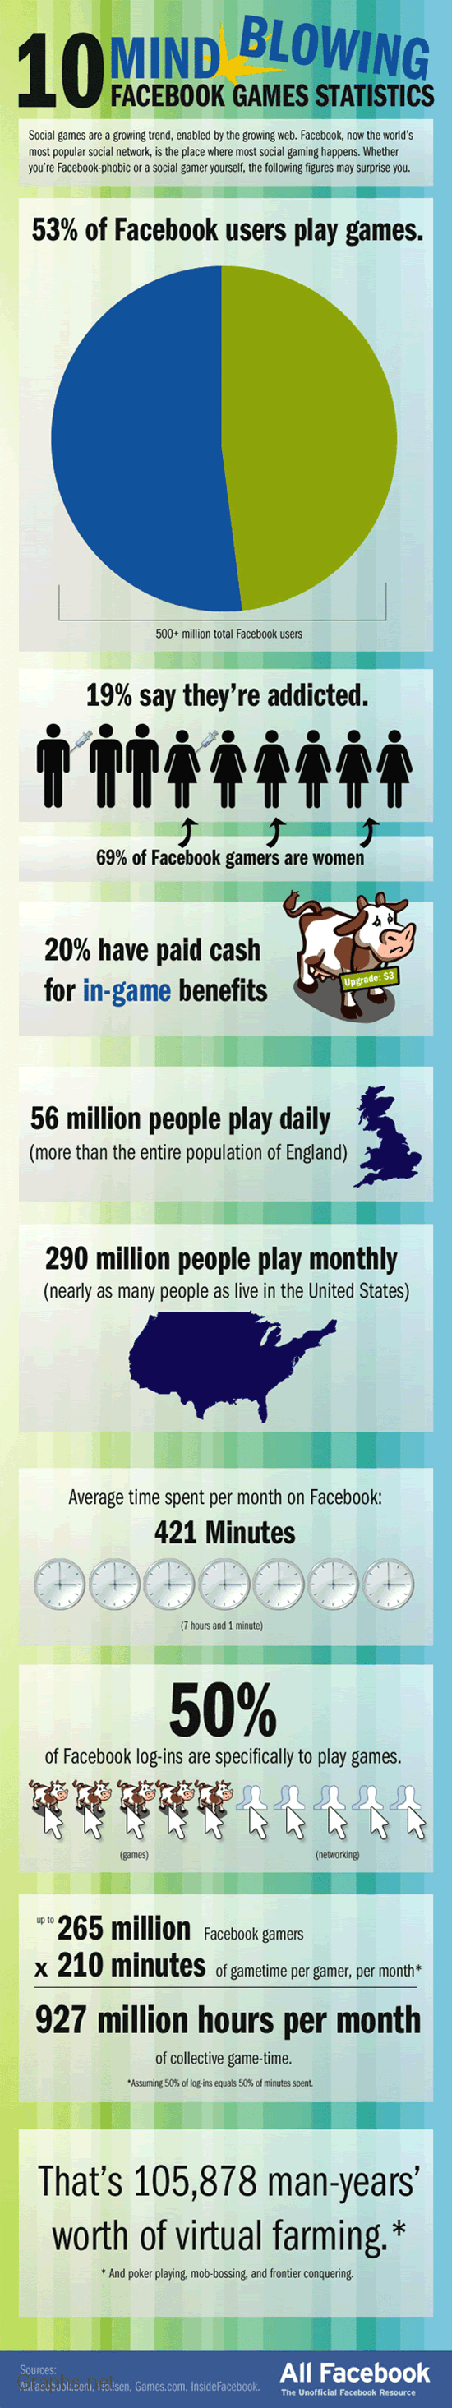 10 Stunning Statistics of Facebook Games